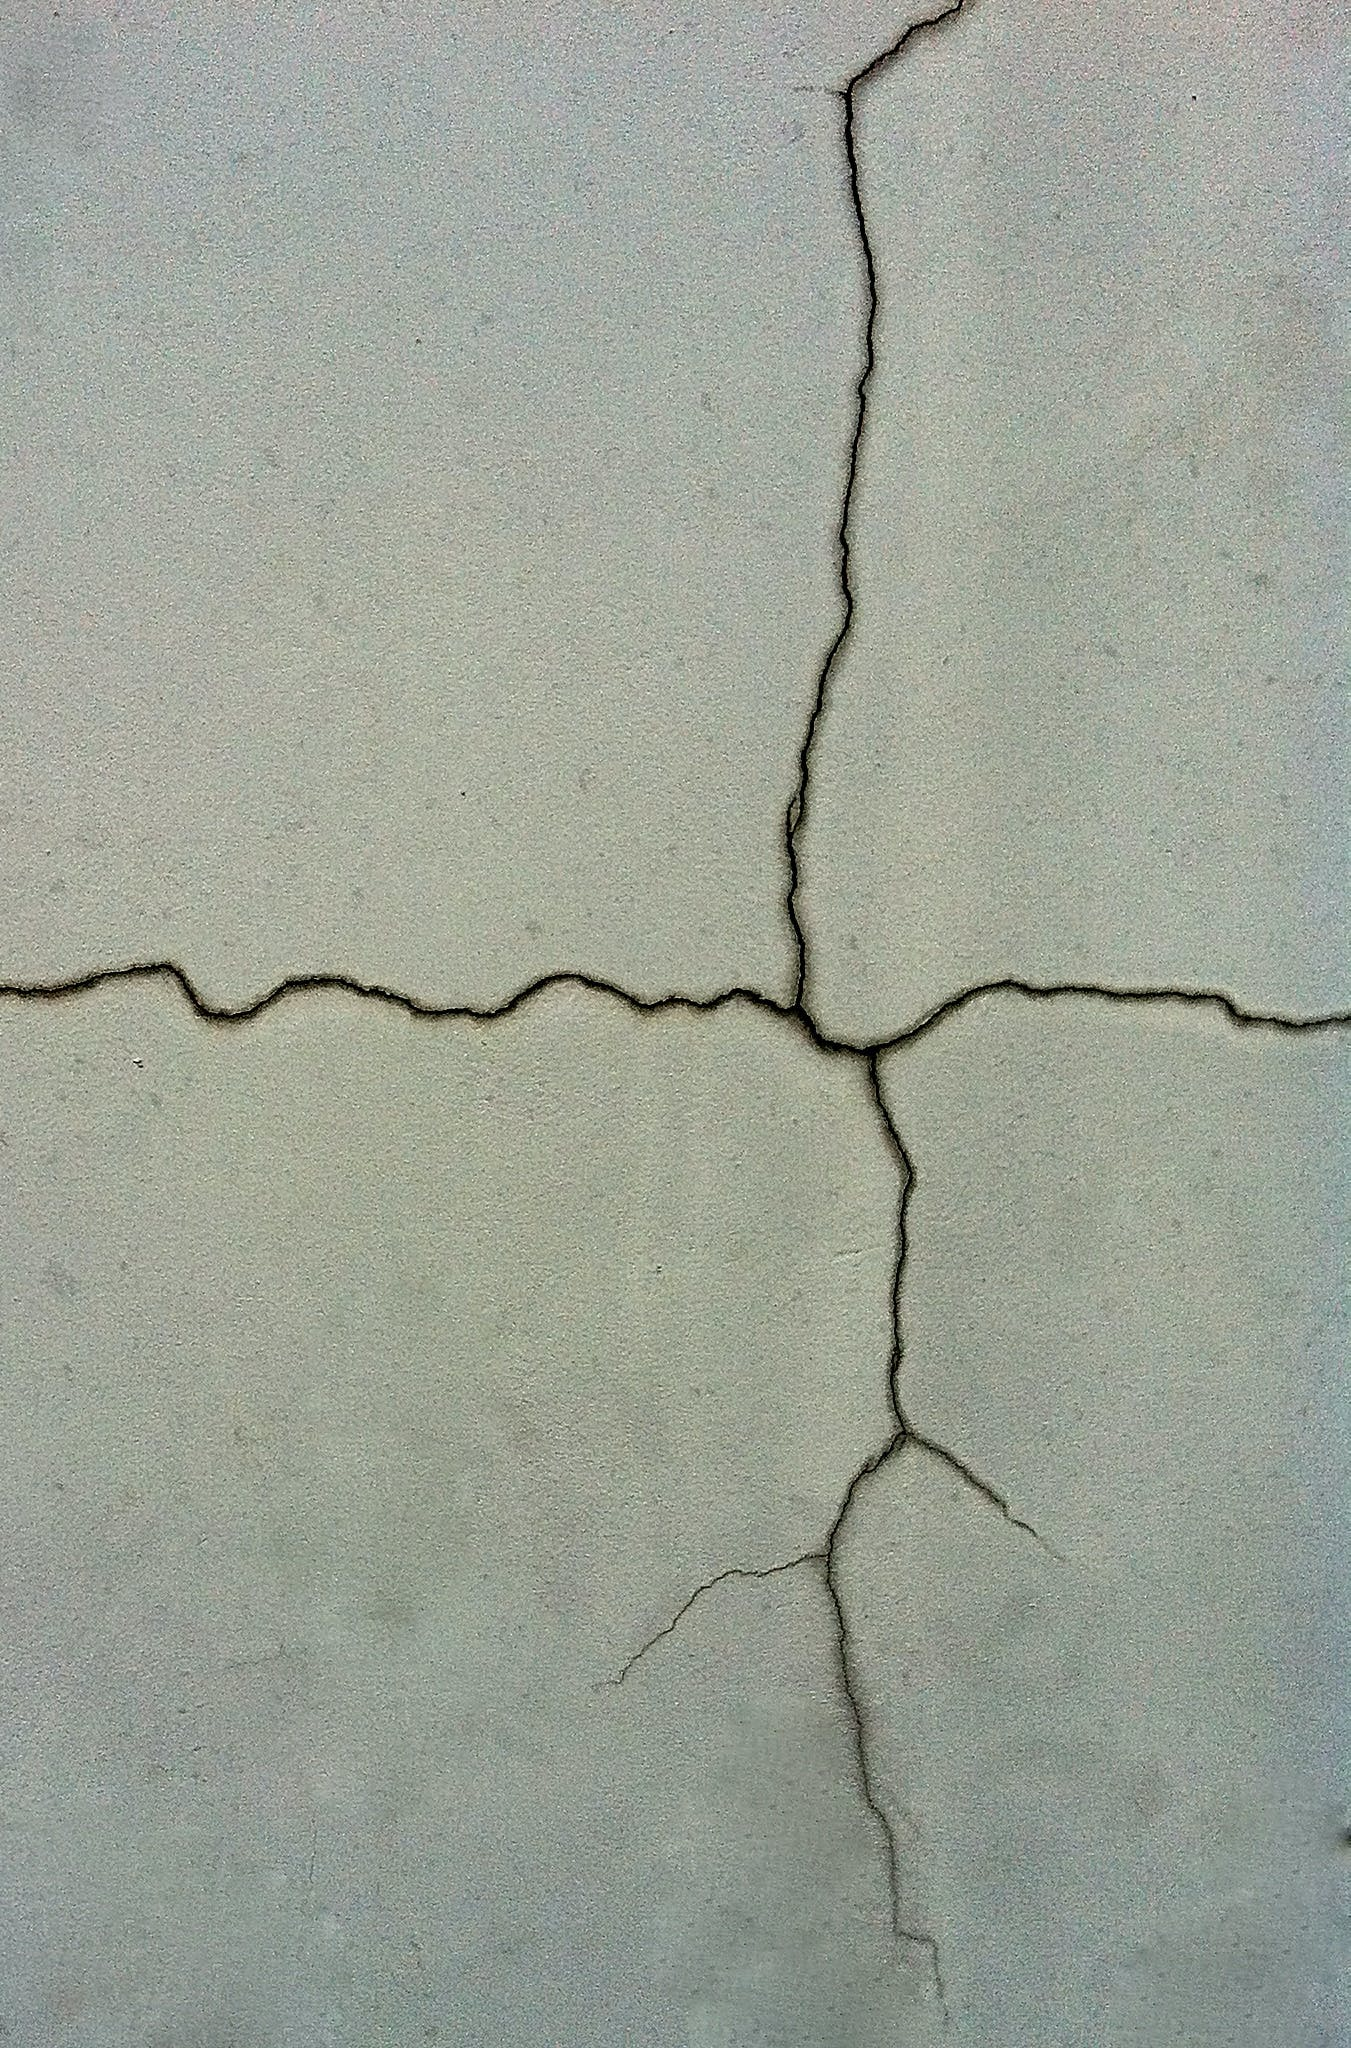 Free stock photo of crack, wall